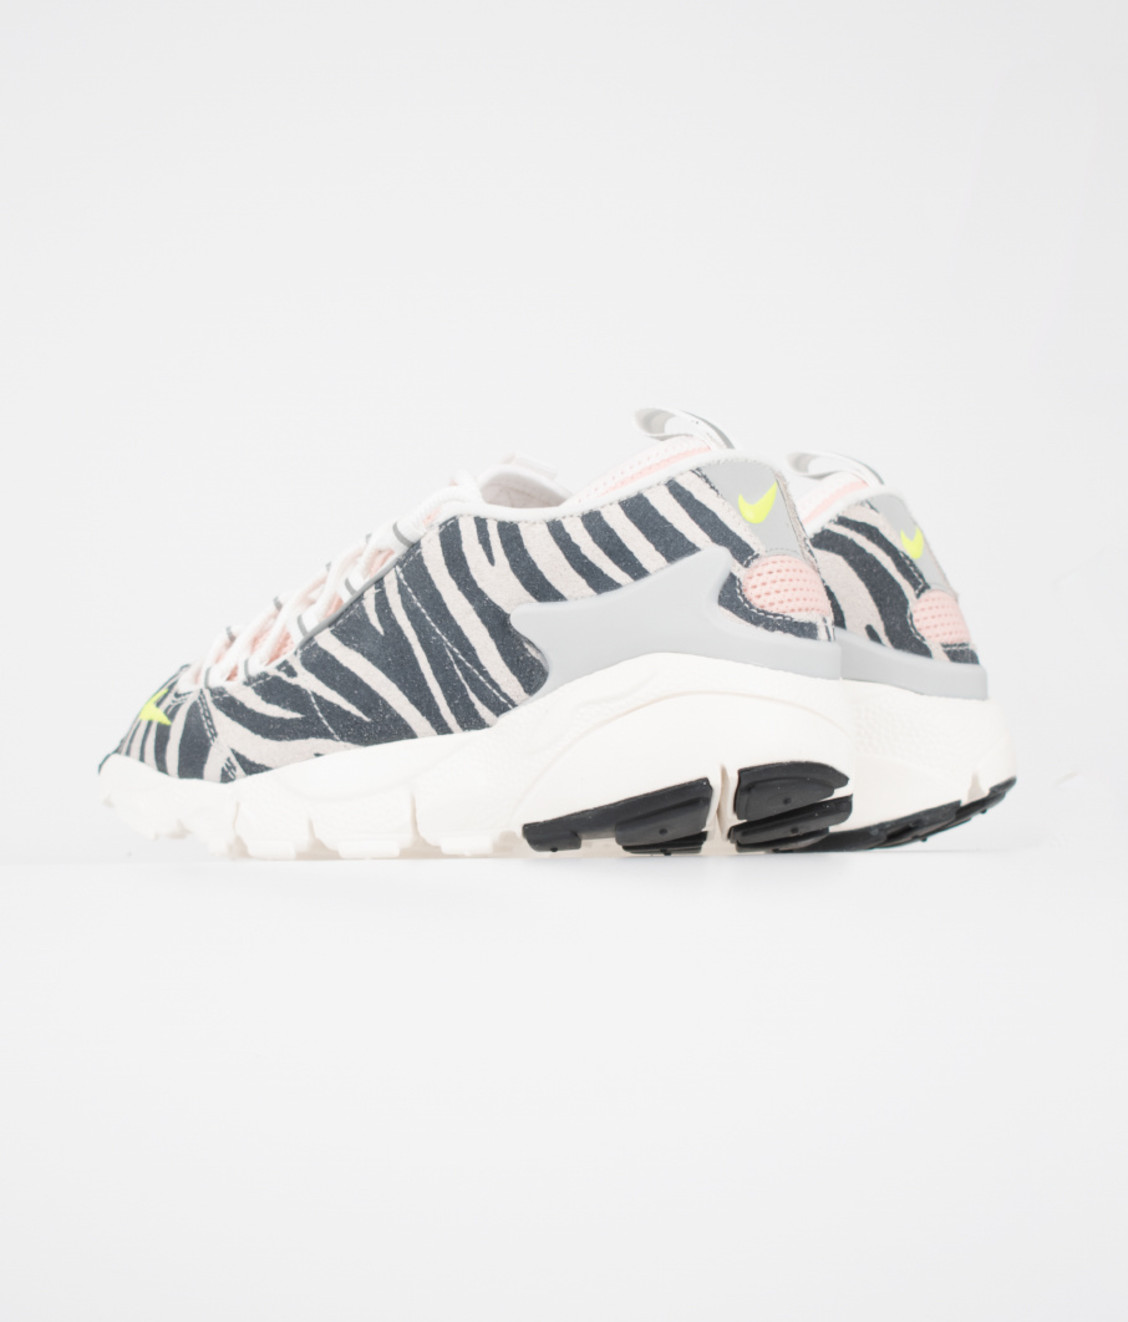 Nike Nike X Olivia Kim Air Footscape Summit White Zebra